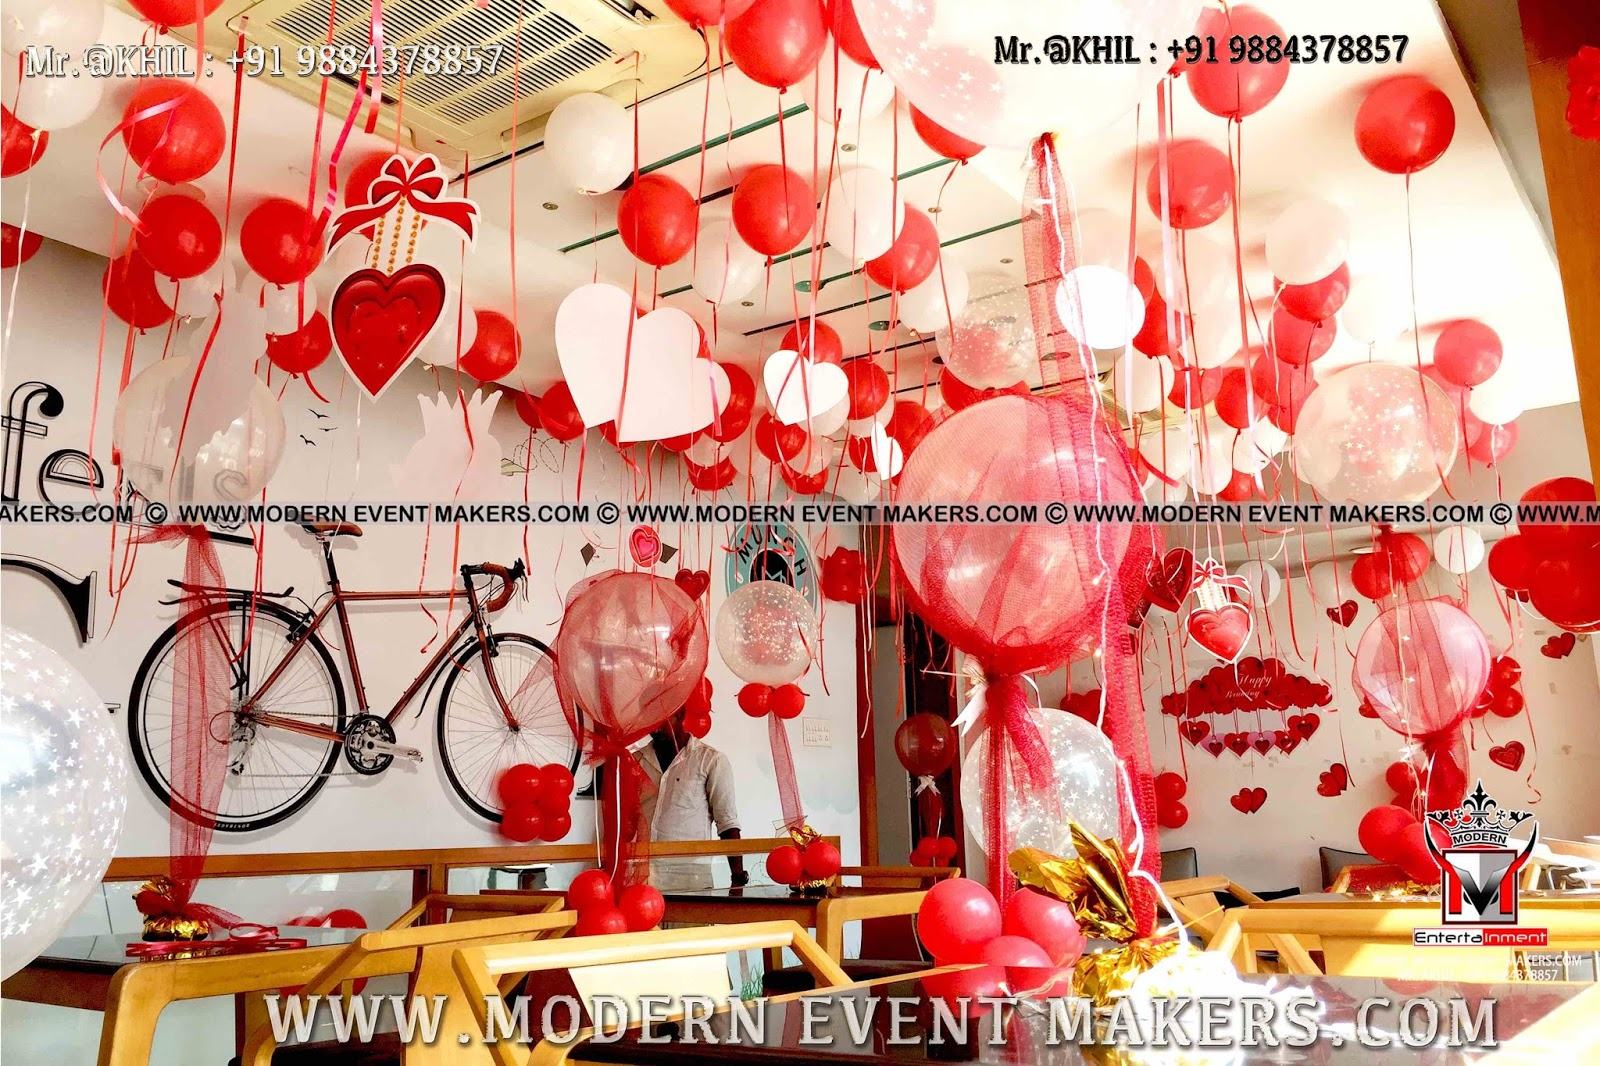 Surprise Party Ideas For Best Friend In Chennai How To Decorate Birthday Room With Balloons Decoration